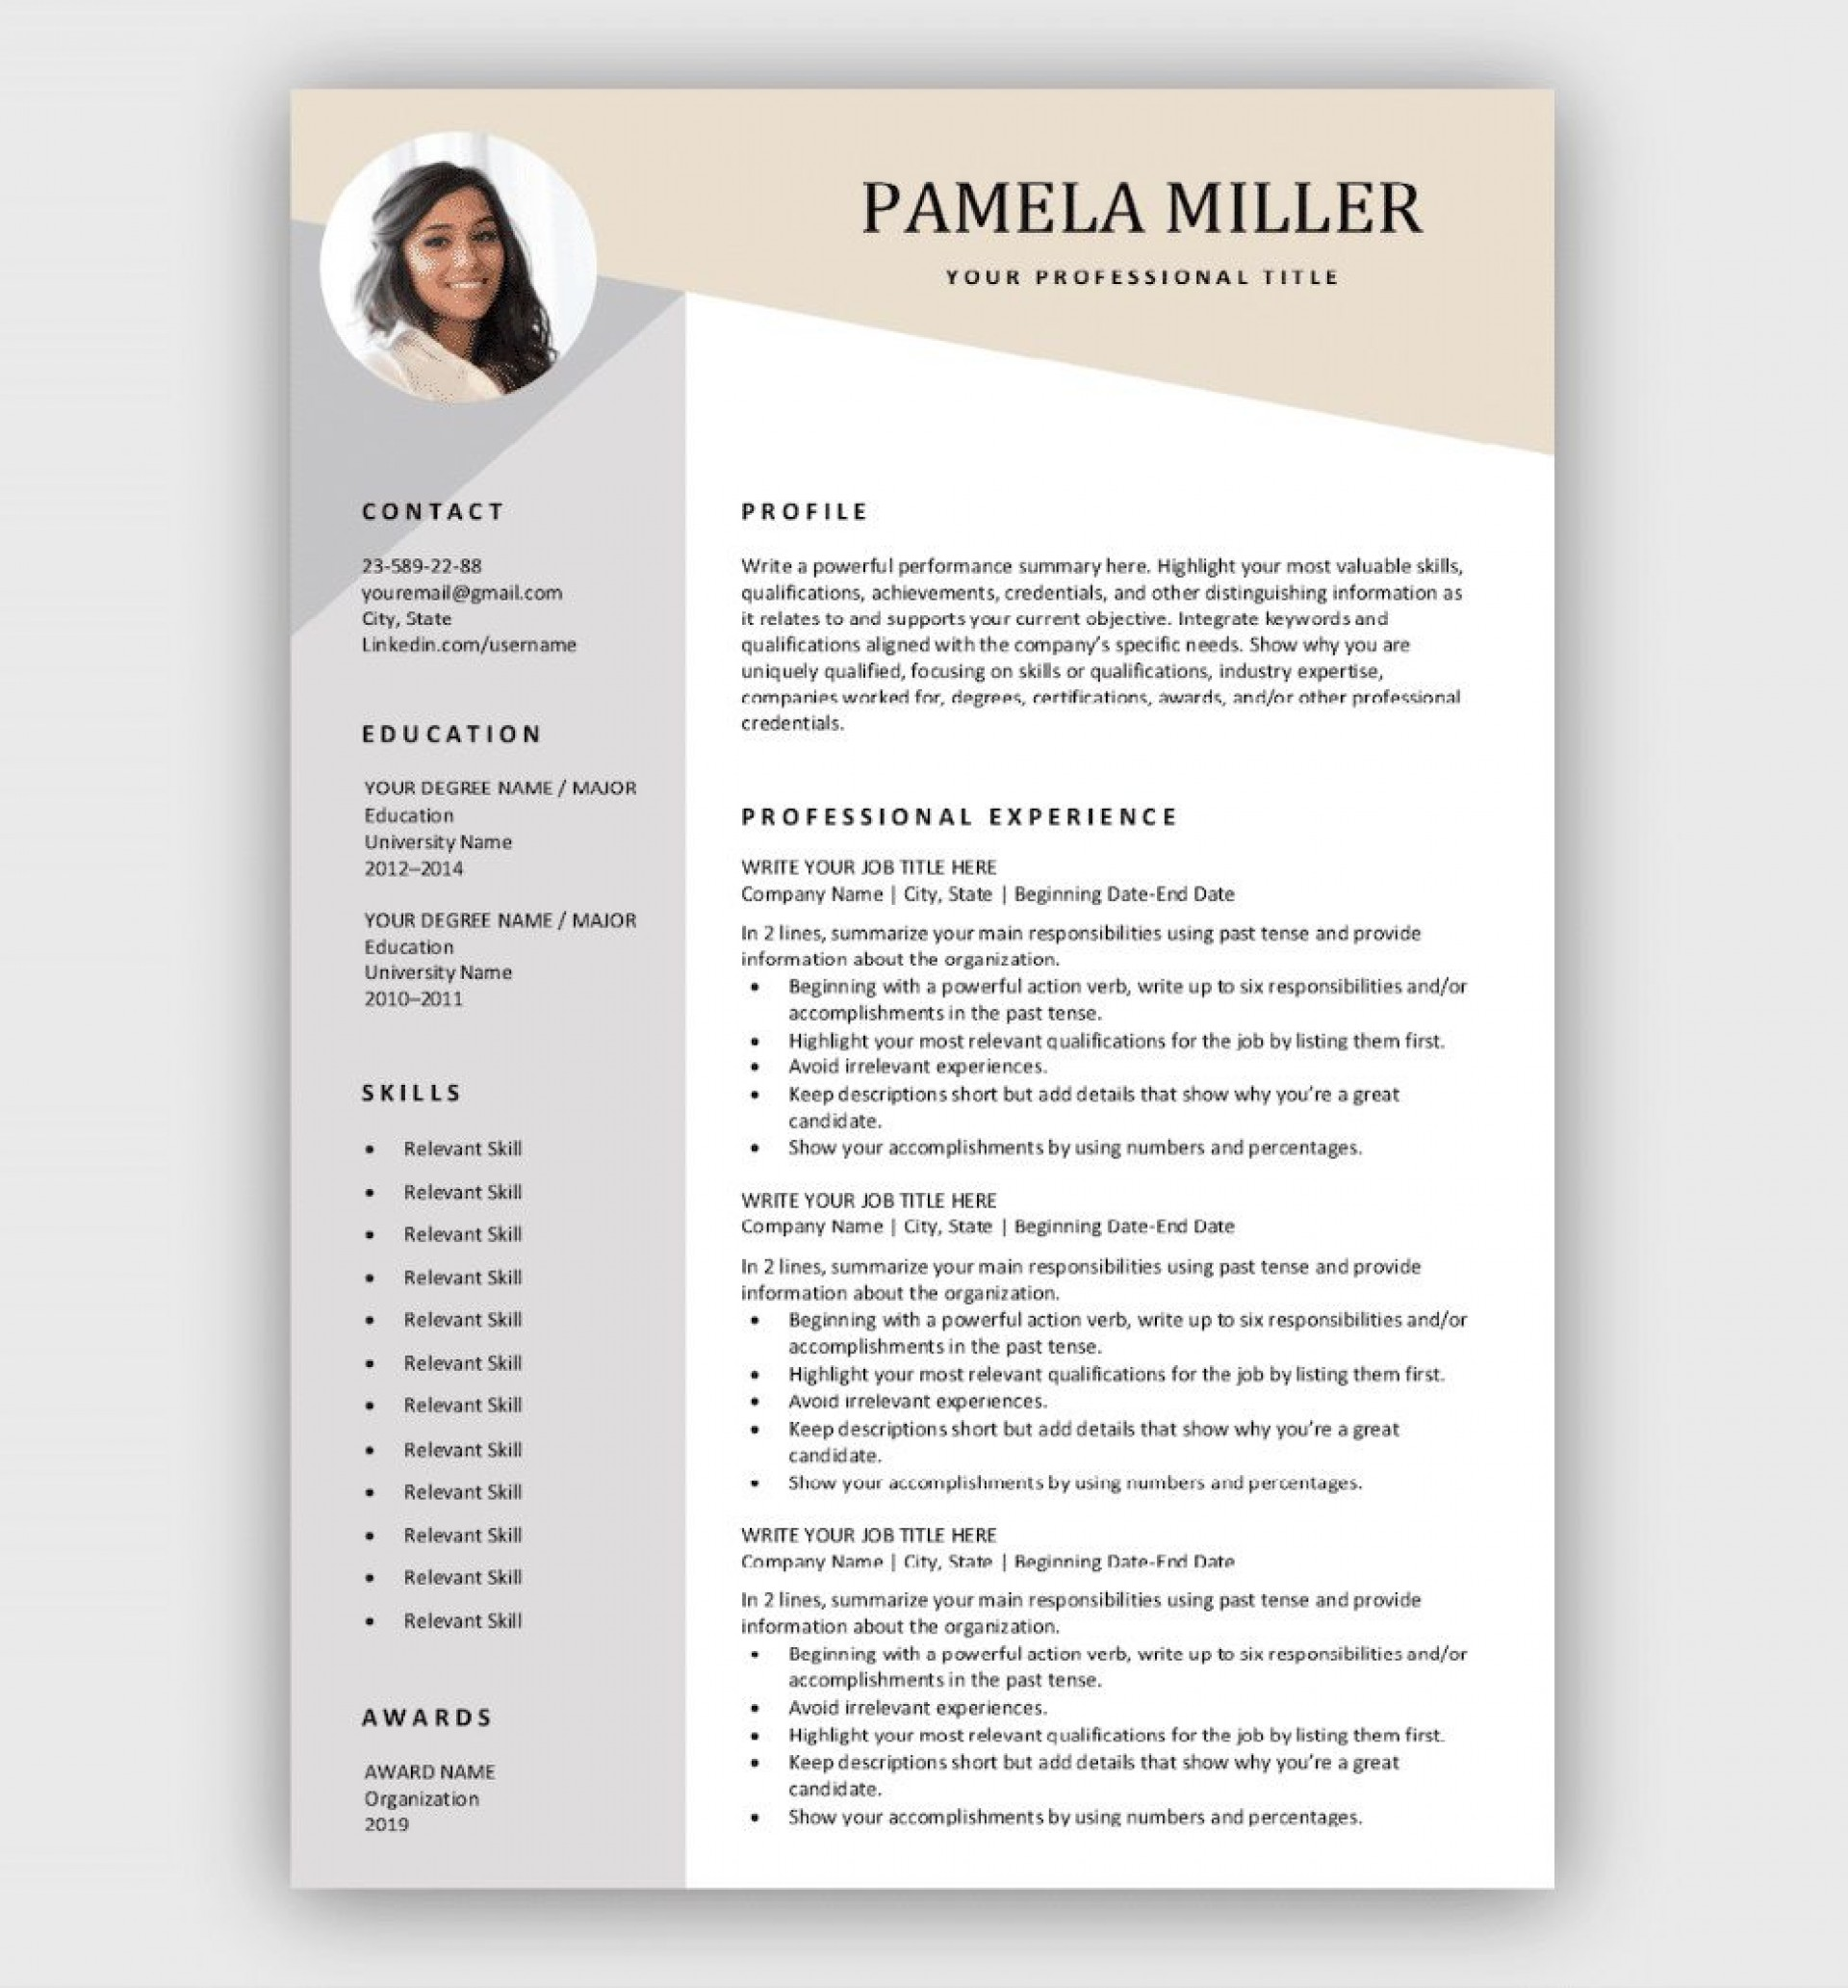 professional resume template free addictionary corporate magnificent photo summary for Resume Corporate Resume Template Free